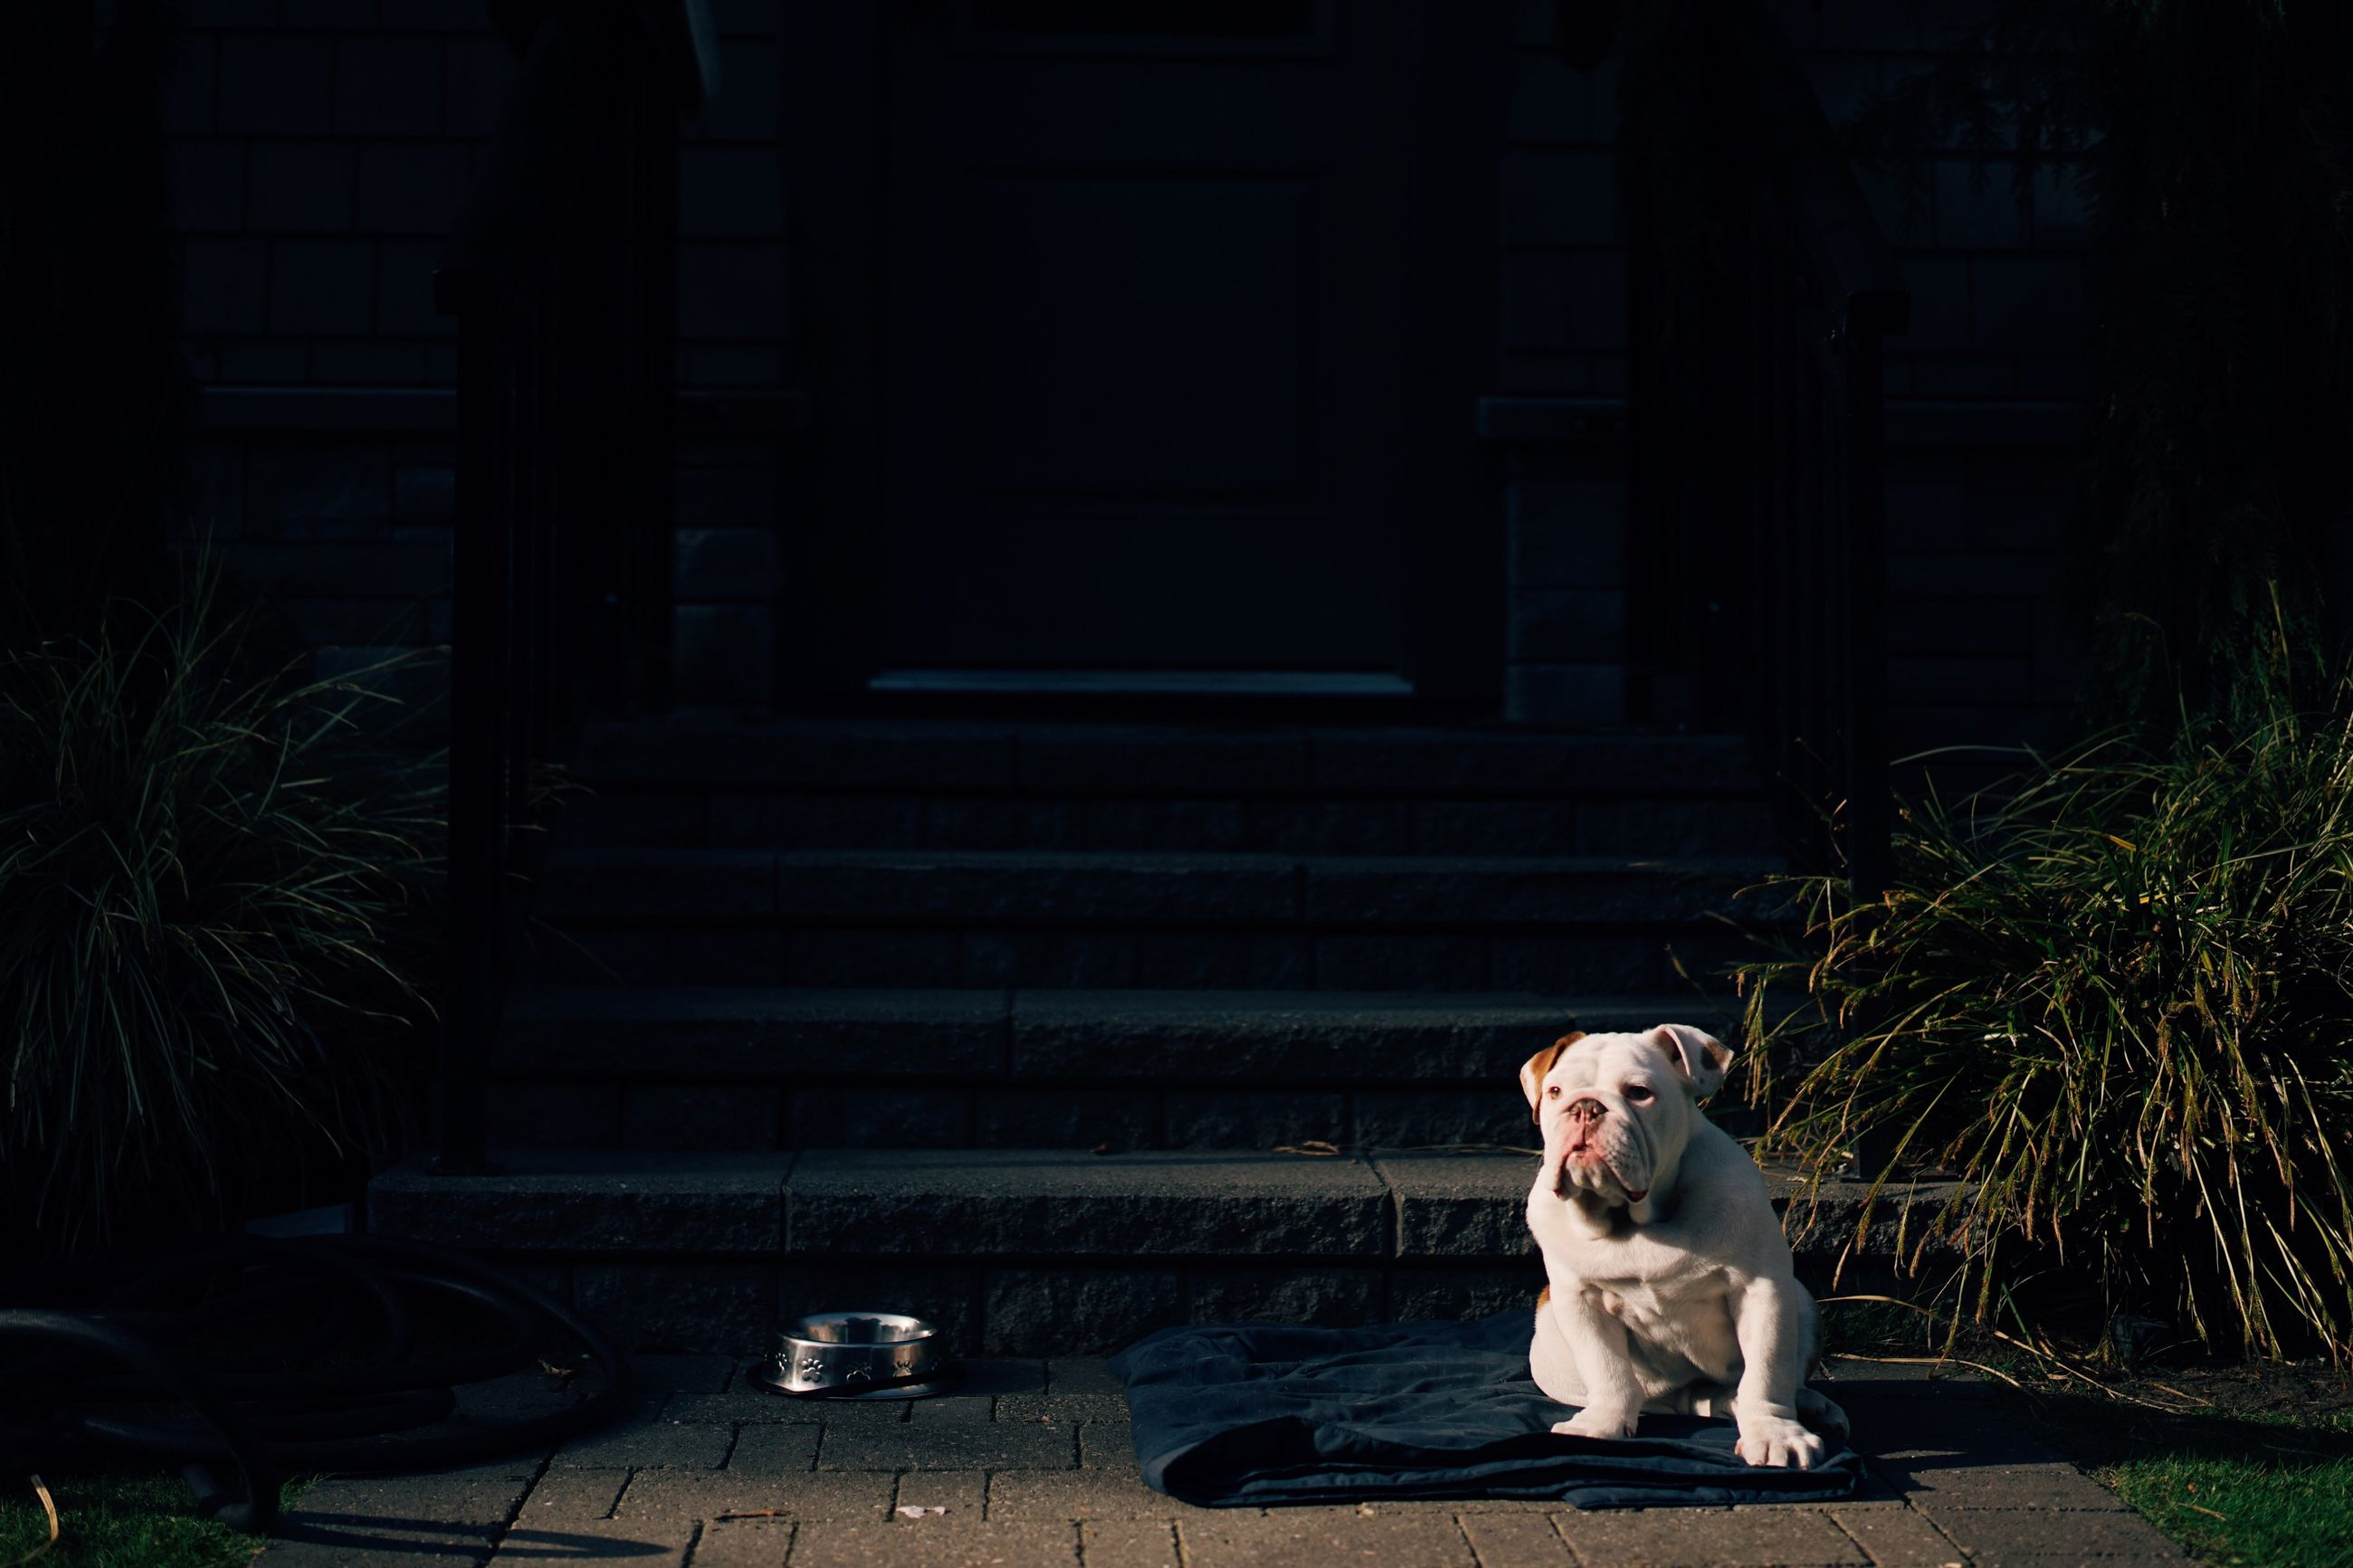 pets, domestic animals, mammal, one animal, animal themes, dog, domestic cat, cat, sitting, built structure, architecture, building exterior, feline, full length, looking at camera, relaxation, street, outdoors, portrait